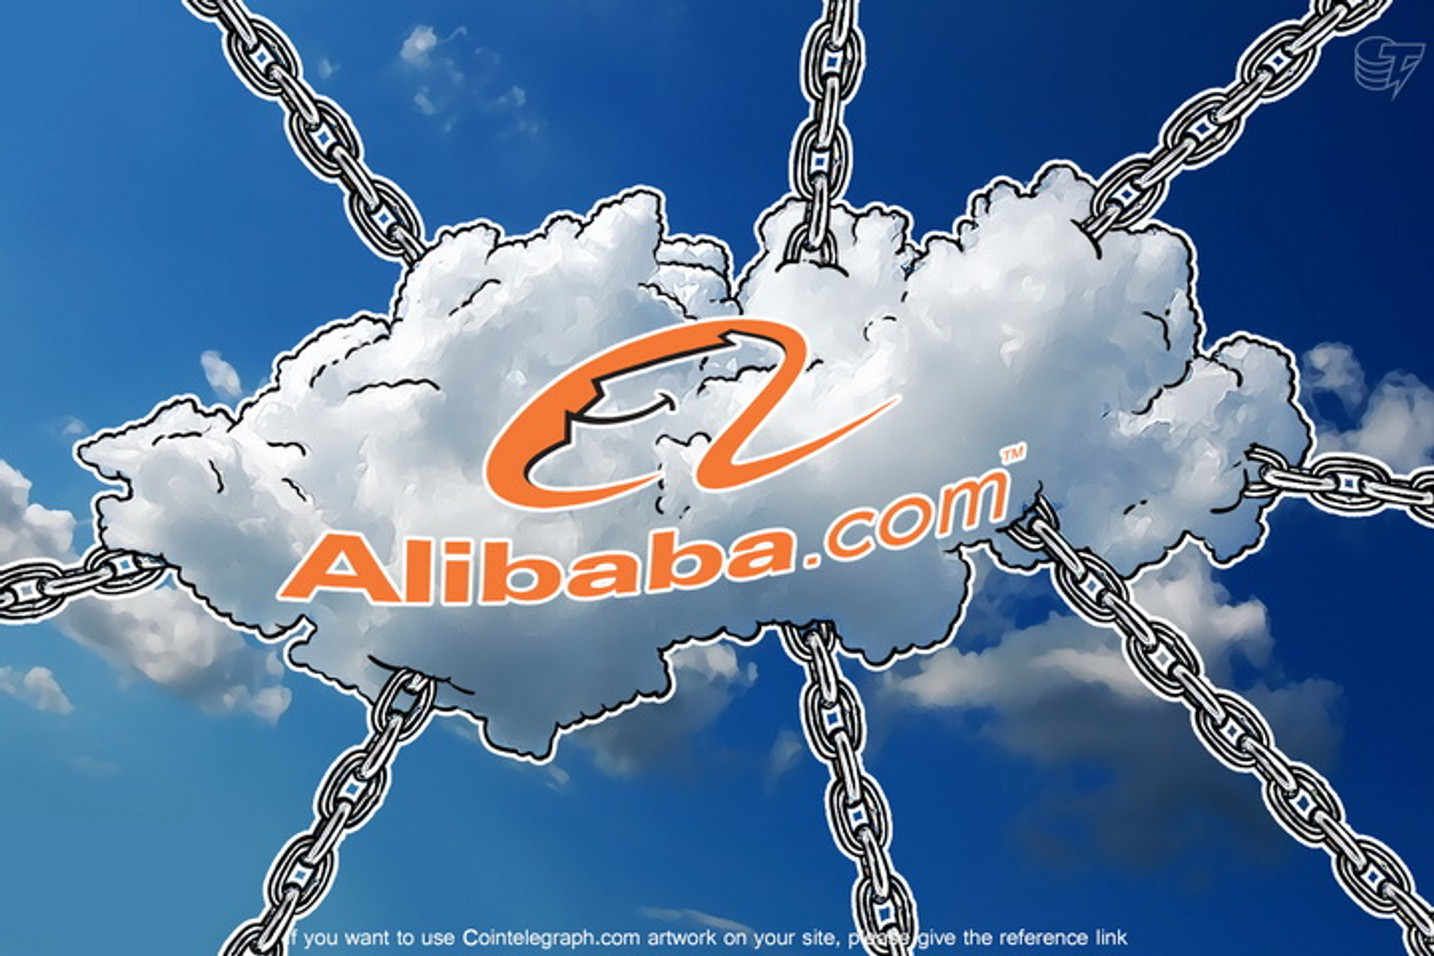 Alibaba Plans To Use Blockchain In Its Cloud Services